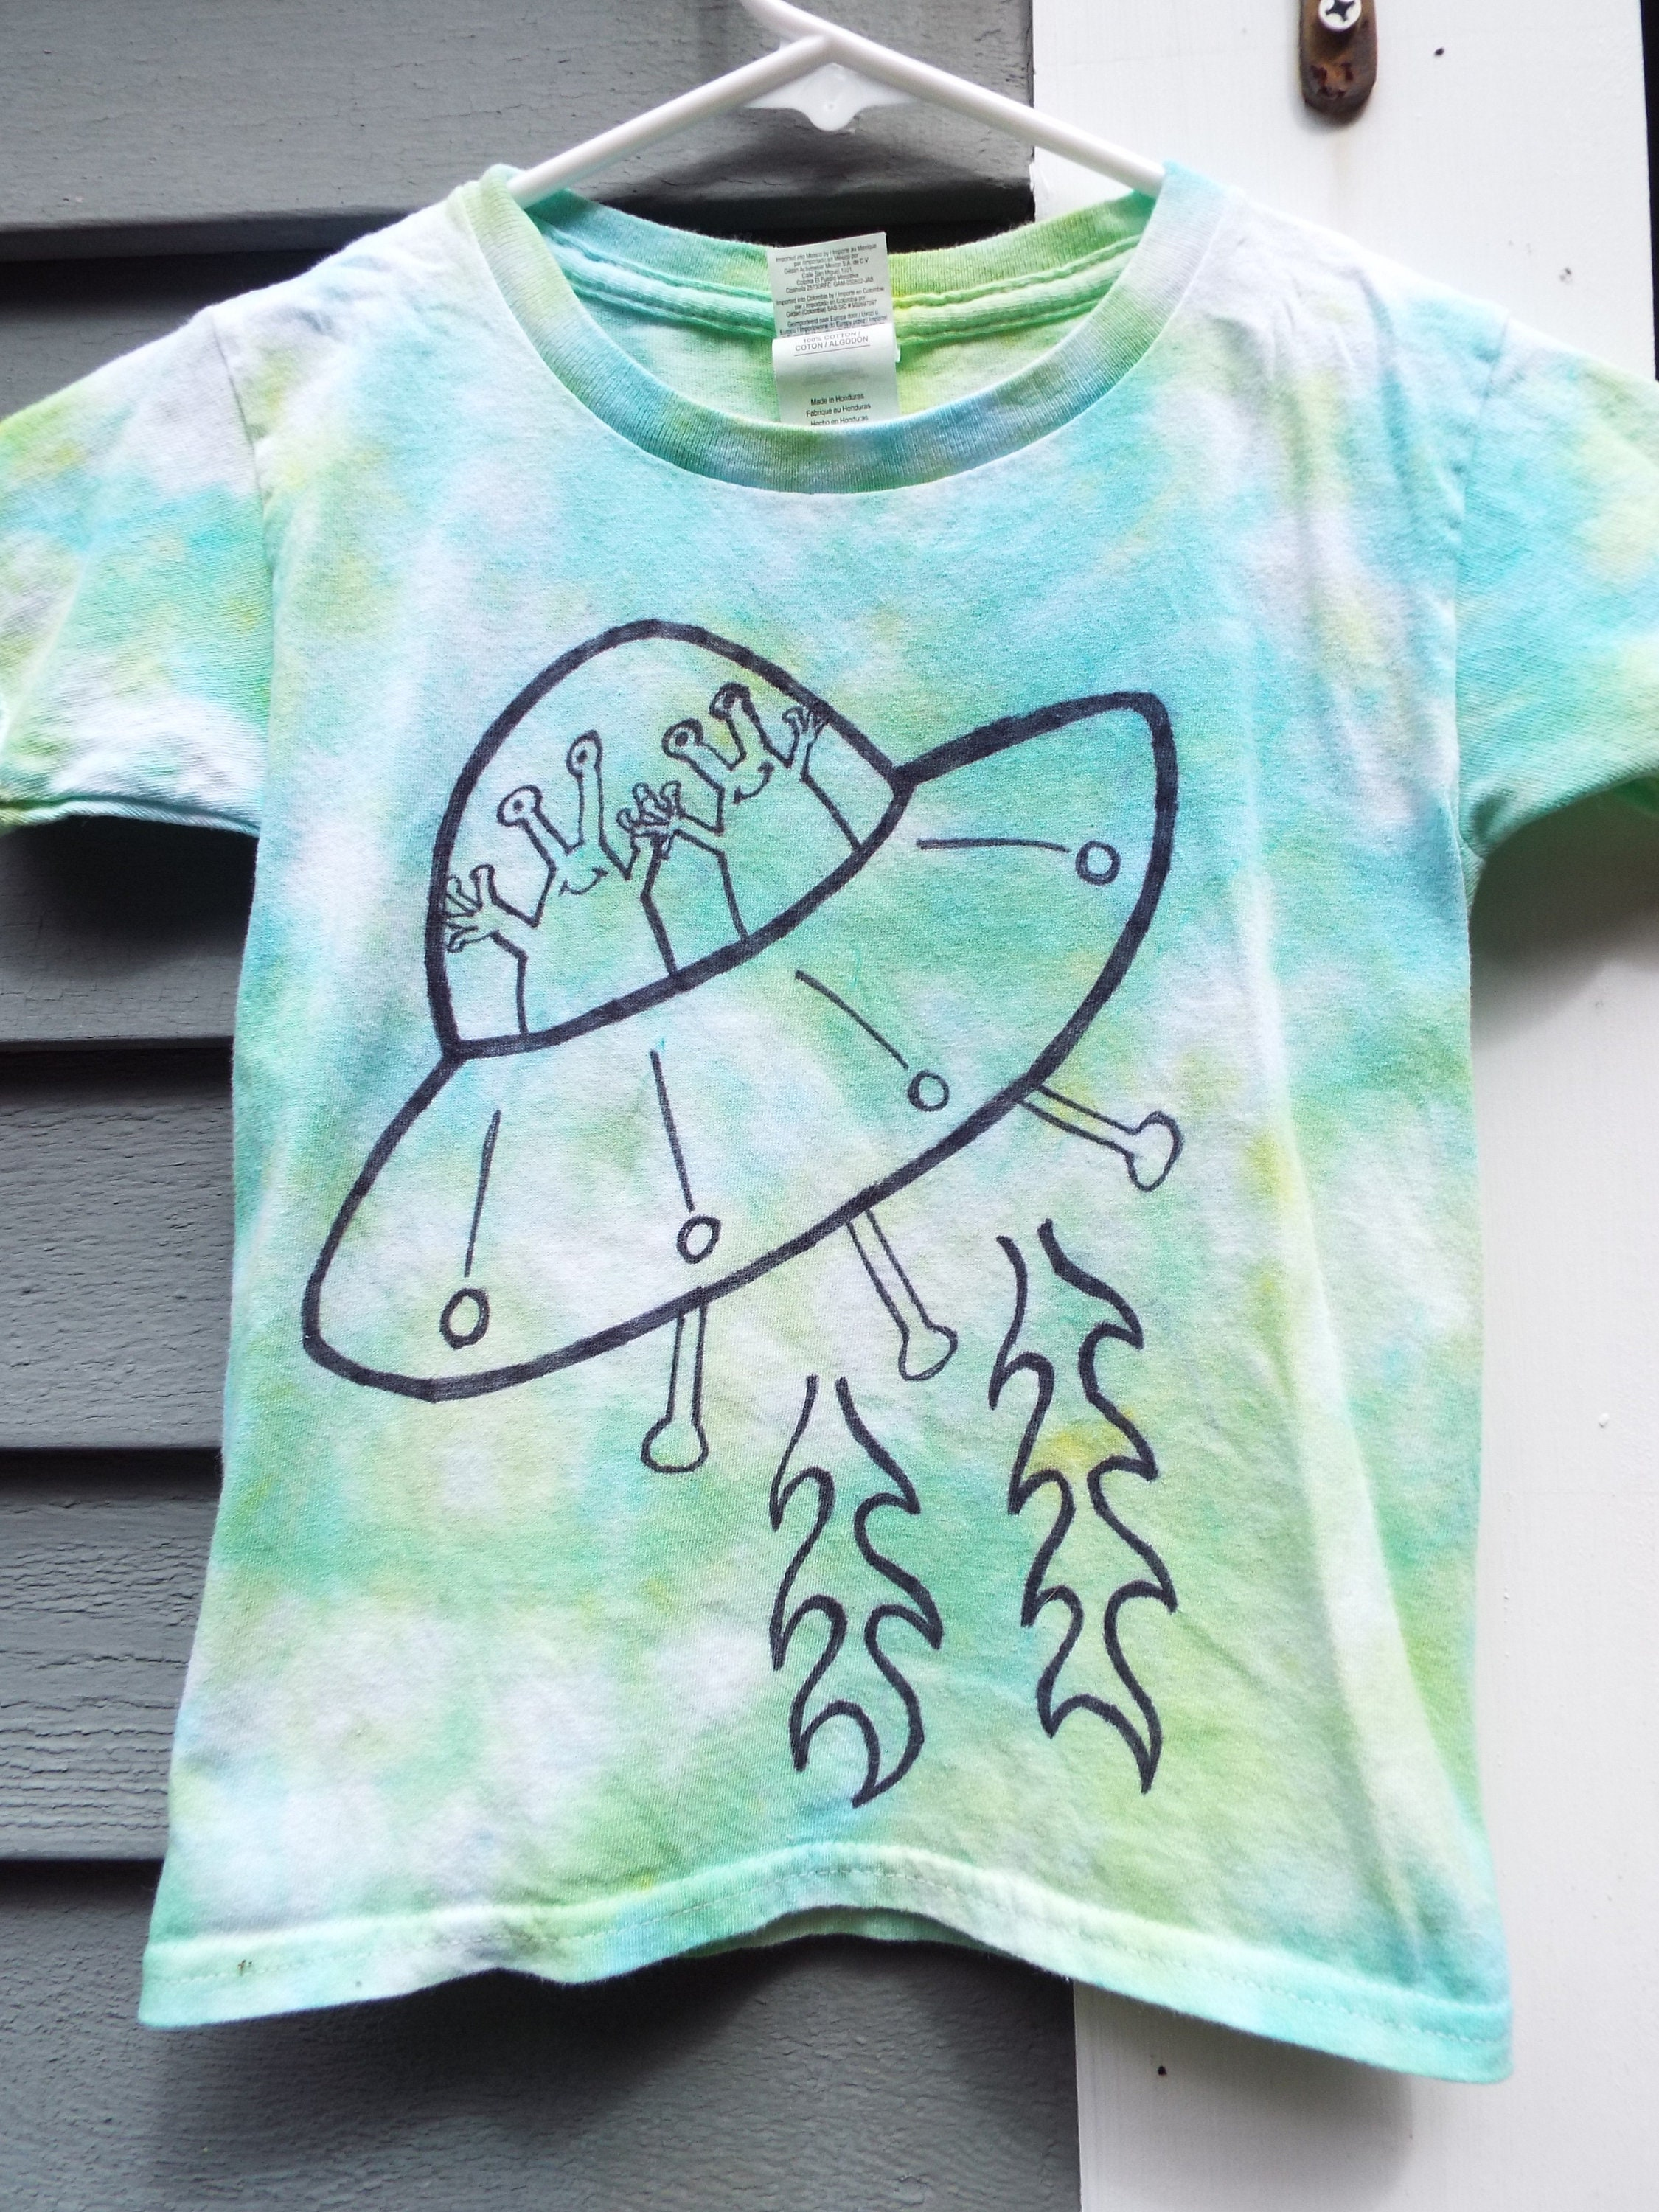 Toddler Alien Shirt Custom Tie Dye Alien T-shirt for  baaba16a5